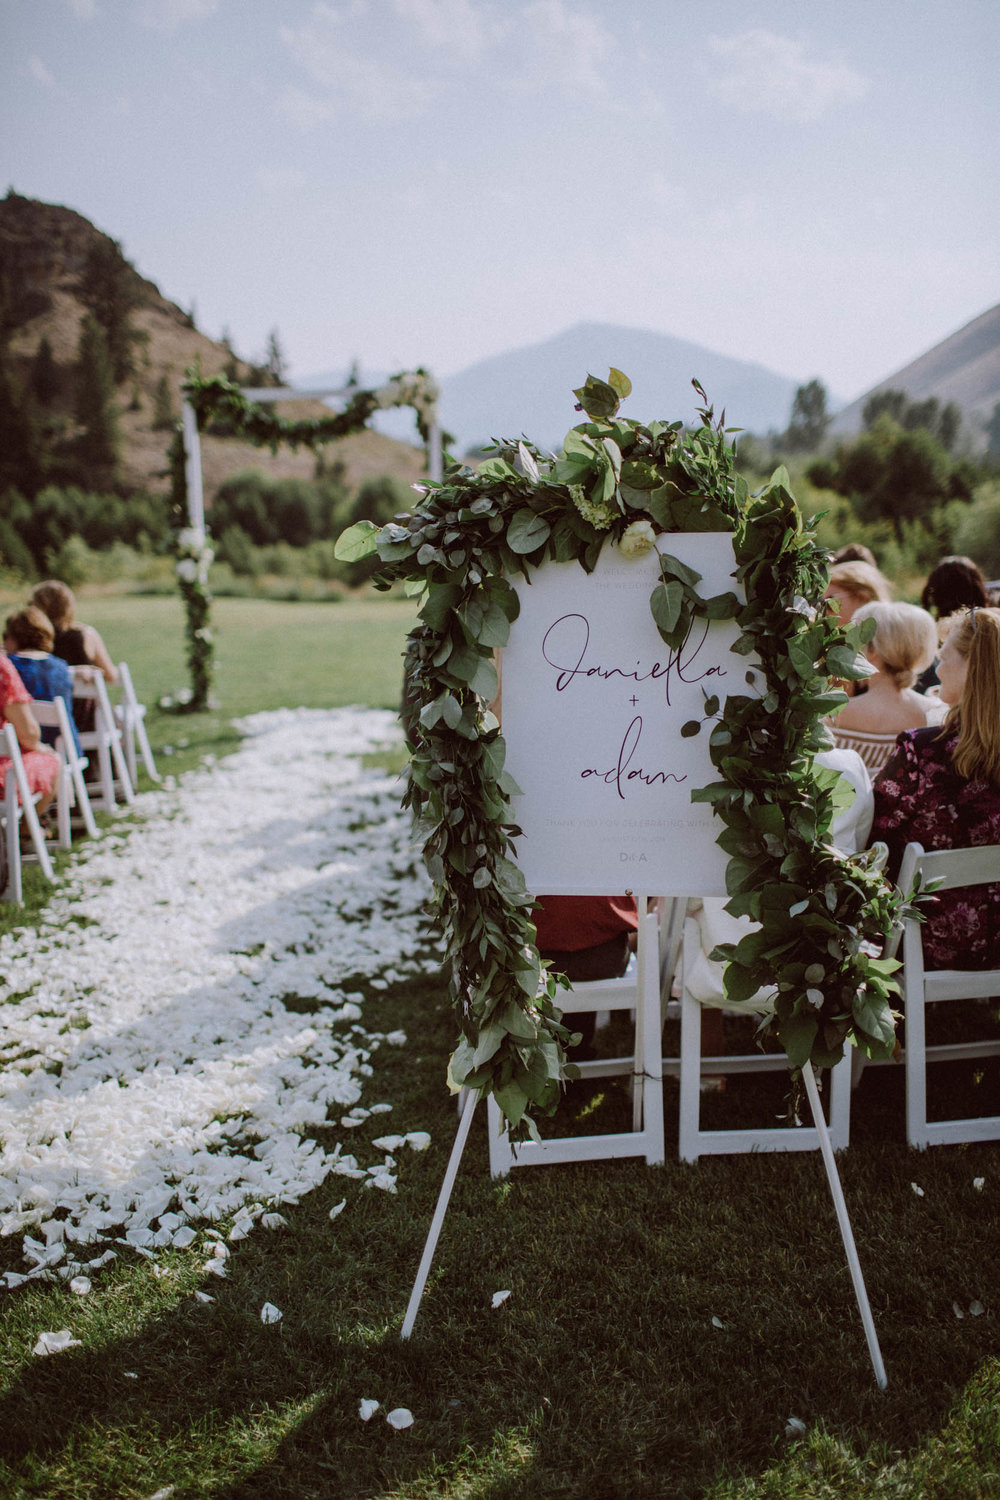 a_d_Trail_creek_wedding-22.jpg